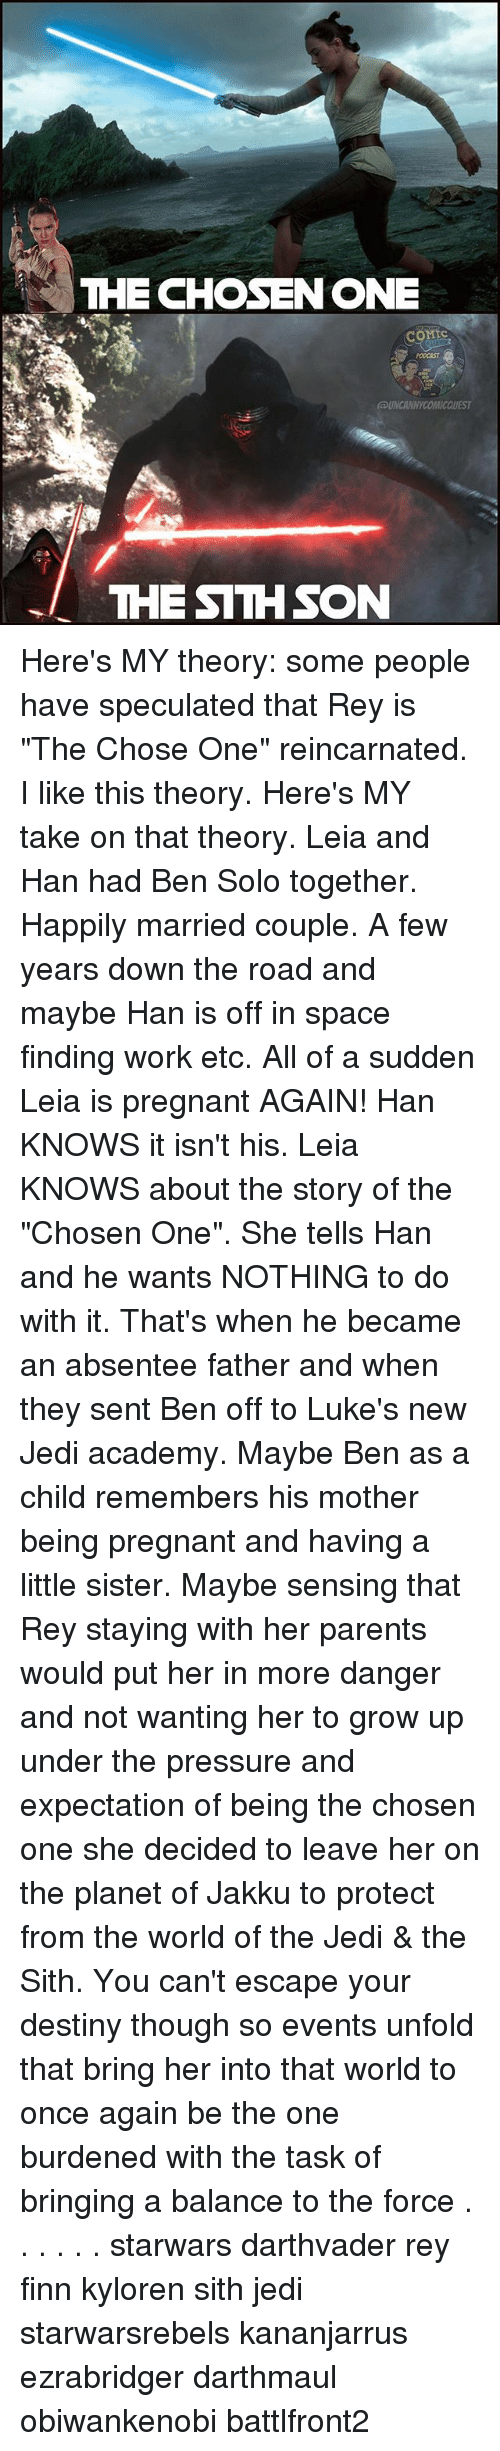 """Jakku: THE CHOSENONE  PODCAST  THE SITHSON Here's MY theory: some people have speculated that Rey is """"The Chose One"""" reincarnated. I like this theory. Here's MY take on that theory. Leia and Han had Ben Solo together. Happily married couple. A few years down the road and maybe Han is off in space finding work etc. All of a sudden Leia is pregnant AGAIN! Han KNOWS it isn't his. Leia KNOWS about the story of the """"Chosen One"""". She tells Han and he wants NOTHING to do with it. That's when he became an absentee father and when they sent Ben off to Luke's new Jedi academy. Maybe Ben as a child remembers his mother being pregnant and having a little sister. Maybe sensing that Rey staying with her parents would put her in more danger and not wanting her to grow up under the pressure and expectation of being the chosen one she decided to leave her on the planet of Jakku to protect from the world of the Jedi & the Sith. You can't escape your destiny though so events unfold that bring her into that world to once again be the one burdened with the task of bringing a balance to the force . . . . . . starwars darthvader rey finn kyloren sith jedi starwarsrebels kananjarrus ezrabridger darthmaul obiwankenobi battlfront2"""